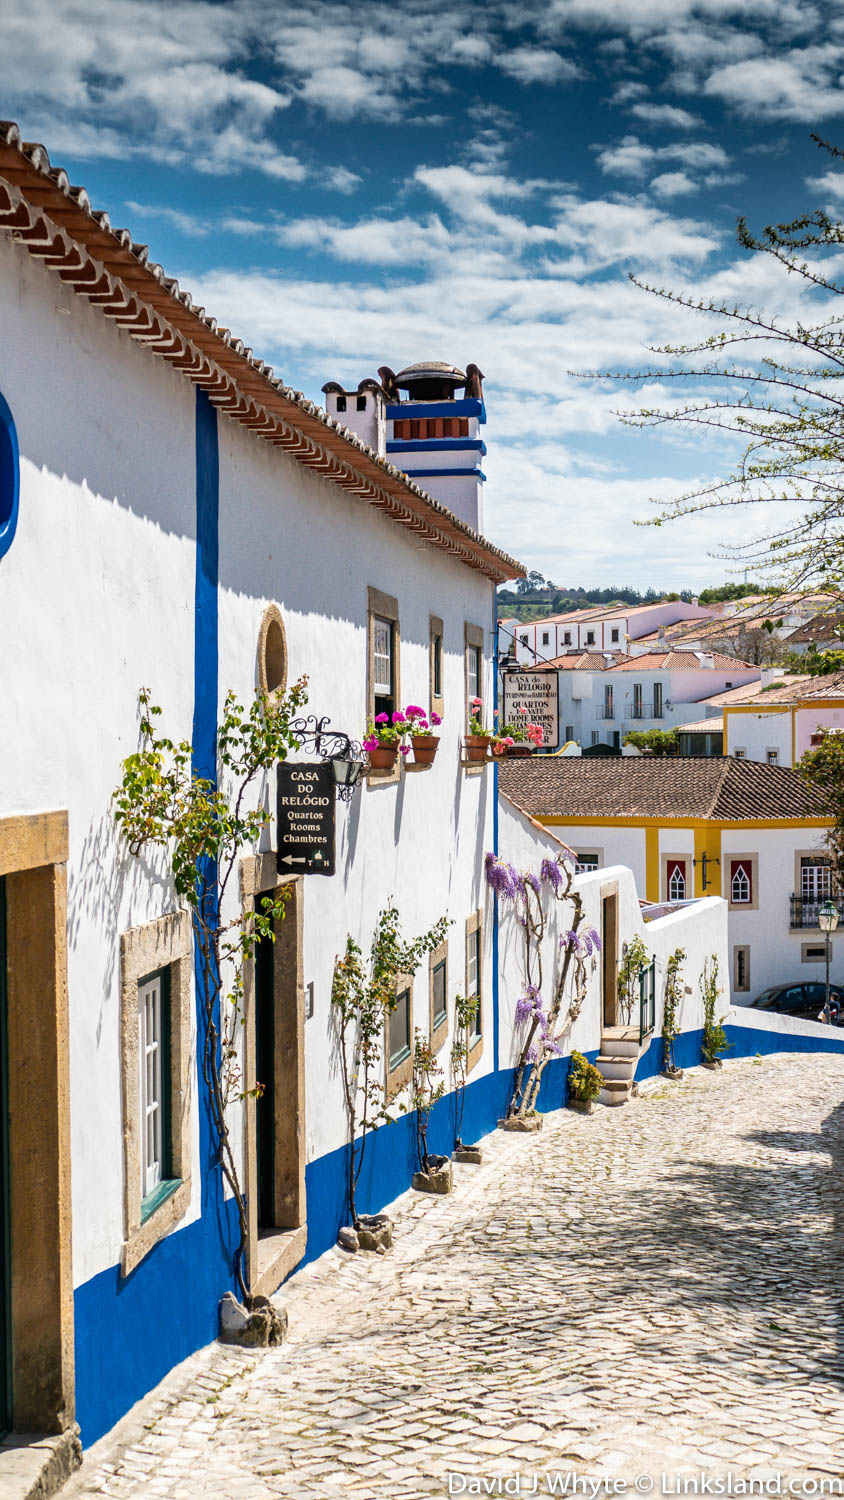 The narrow streets of the village of Óbidos